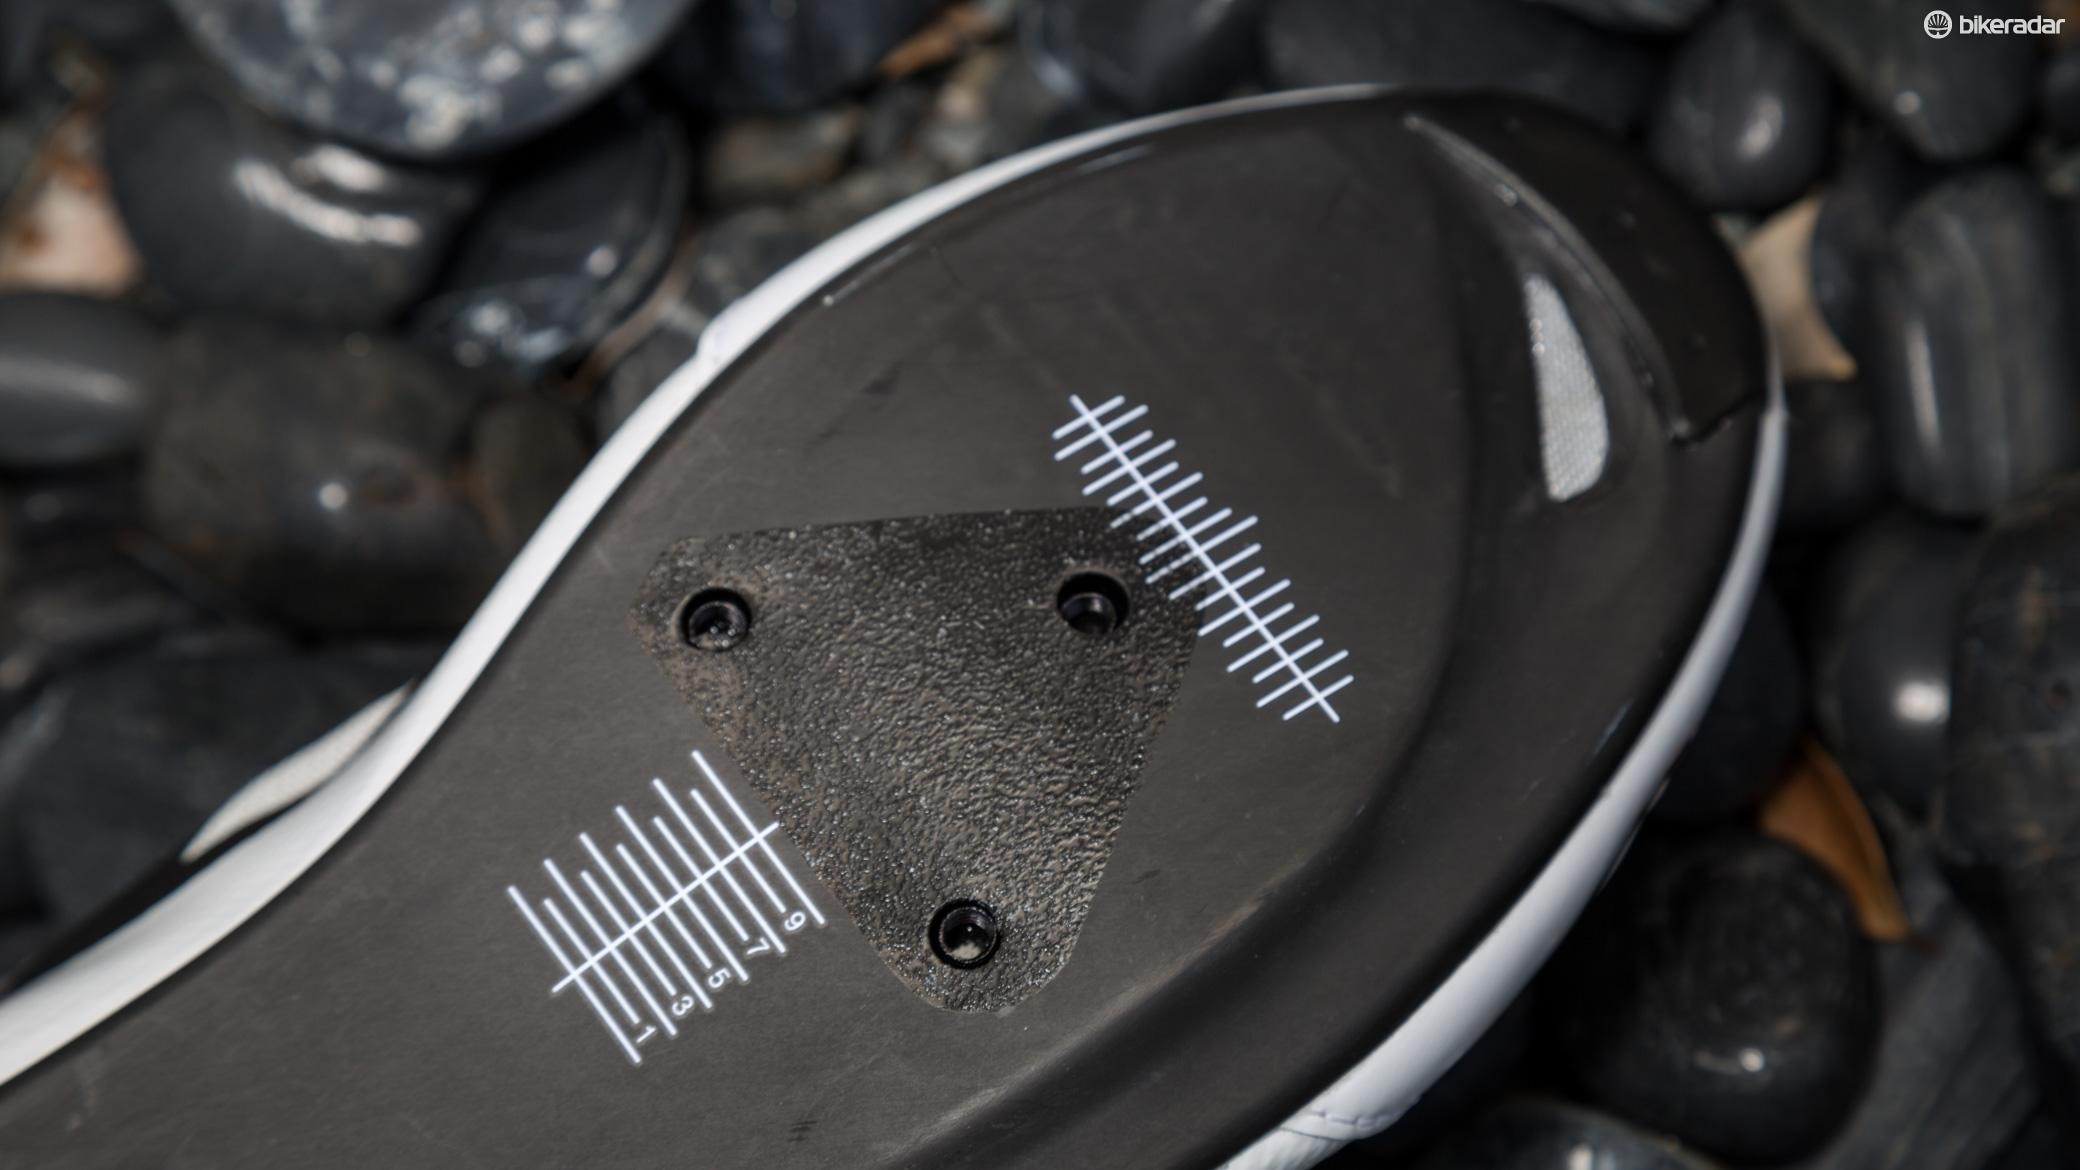 Giro puts its mounting hardware a bit further back than most shoe brands